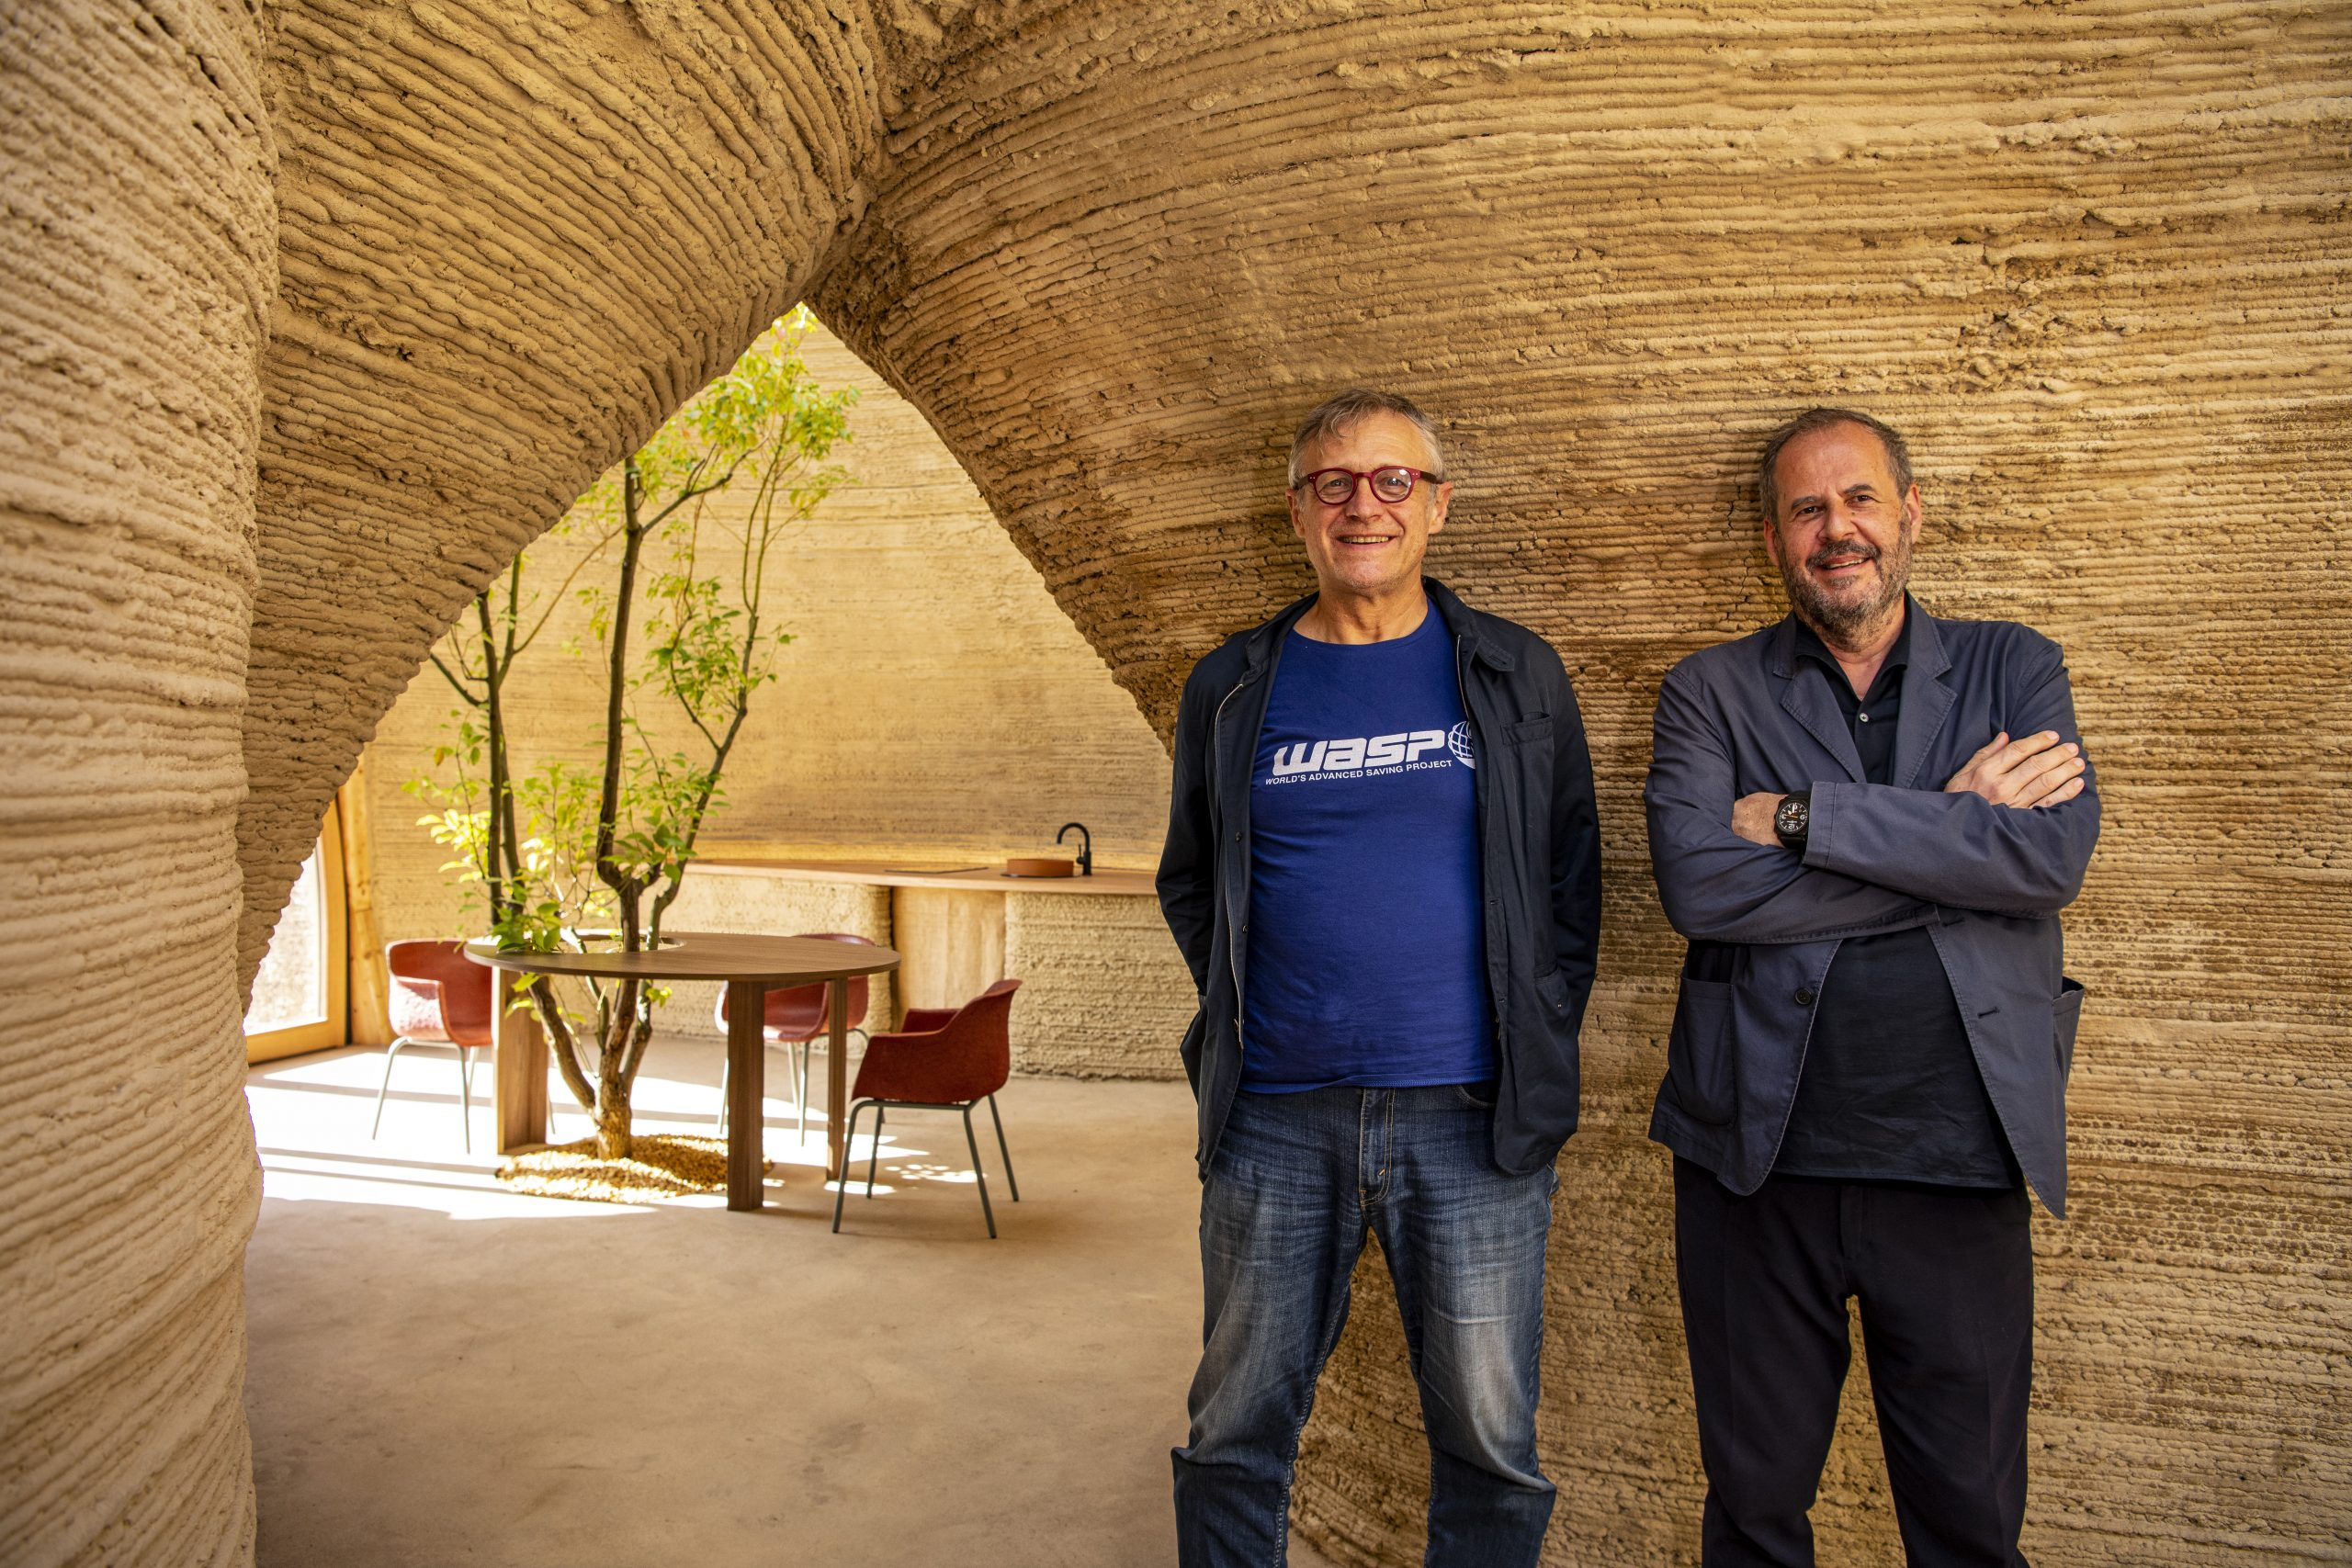 Massimo Moretti and Mario Cucinella inside the TECLA 3D printed house. Photo via WASP.